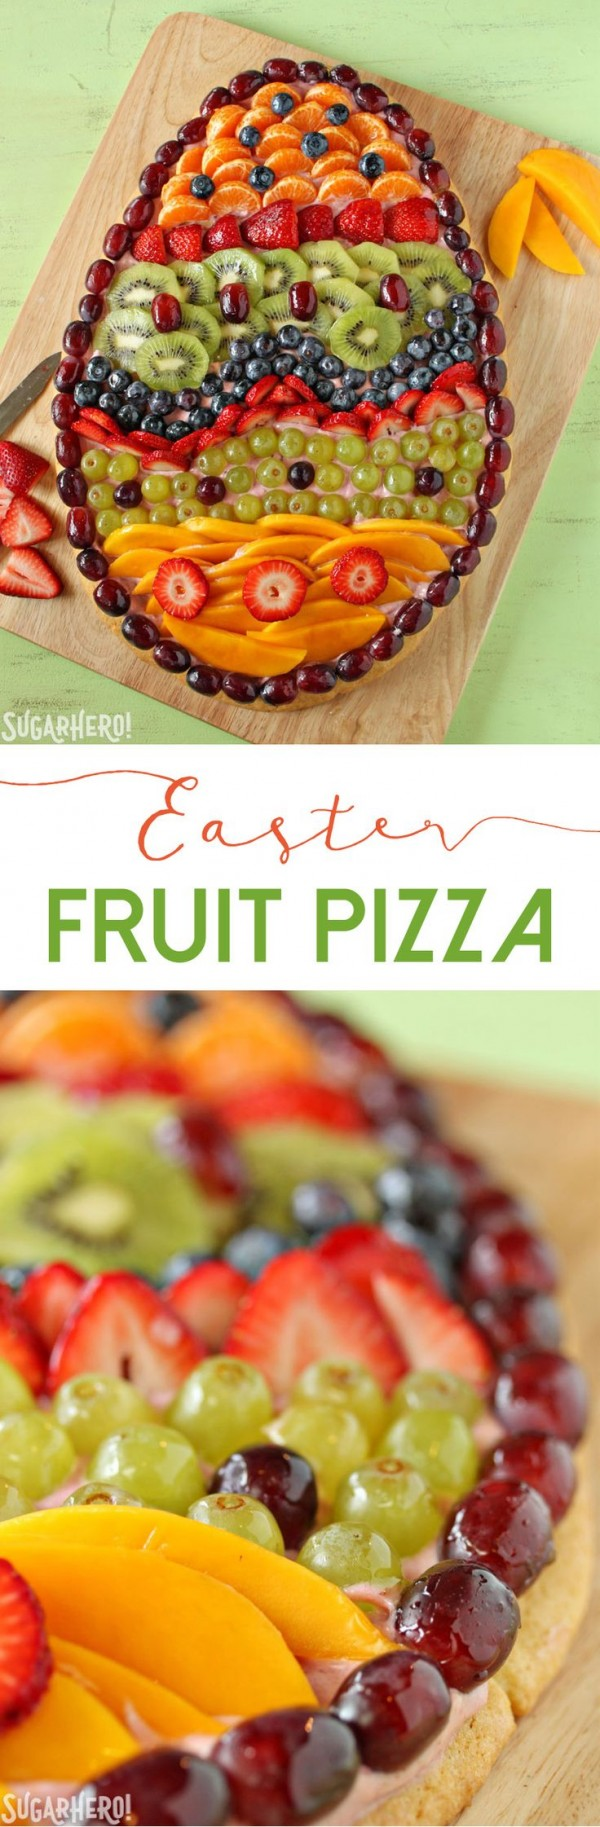 Get the recipe Easter Fruit Pizza @recipes_to_go